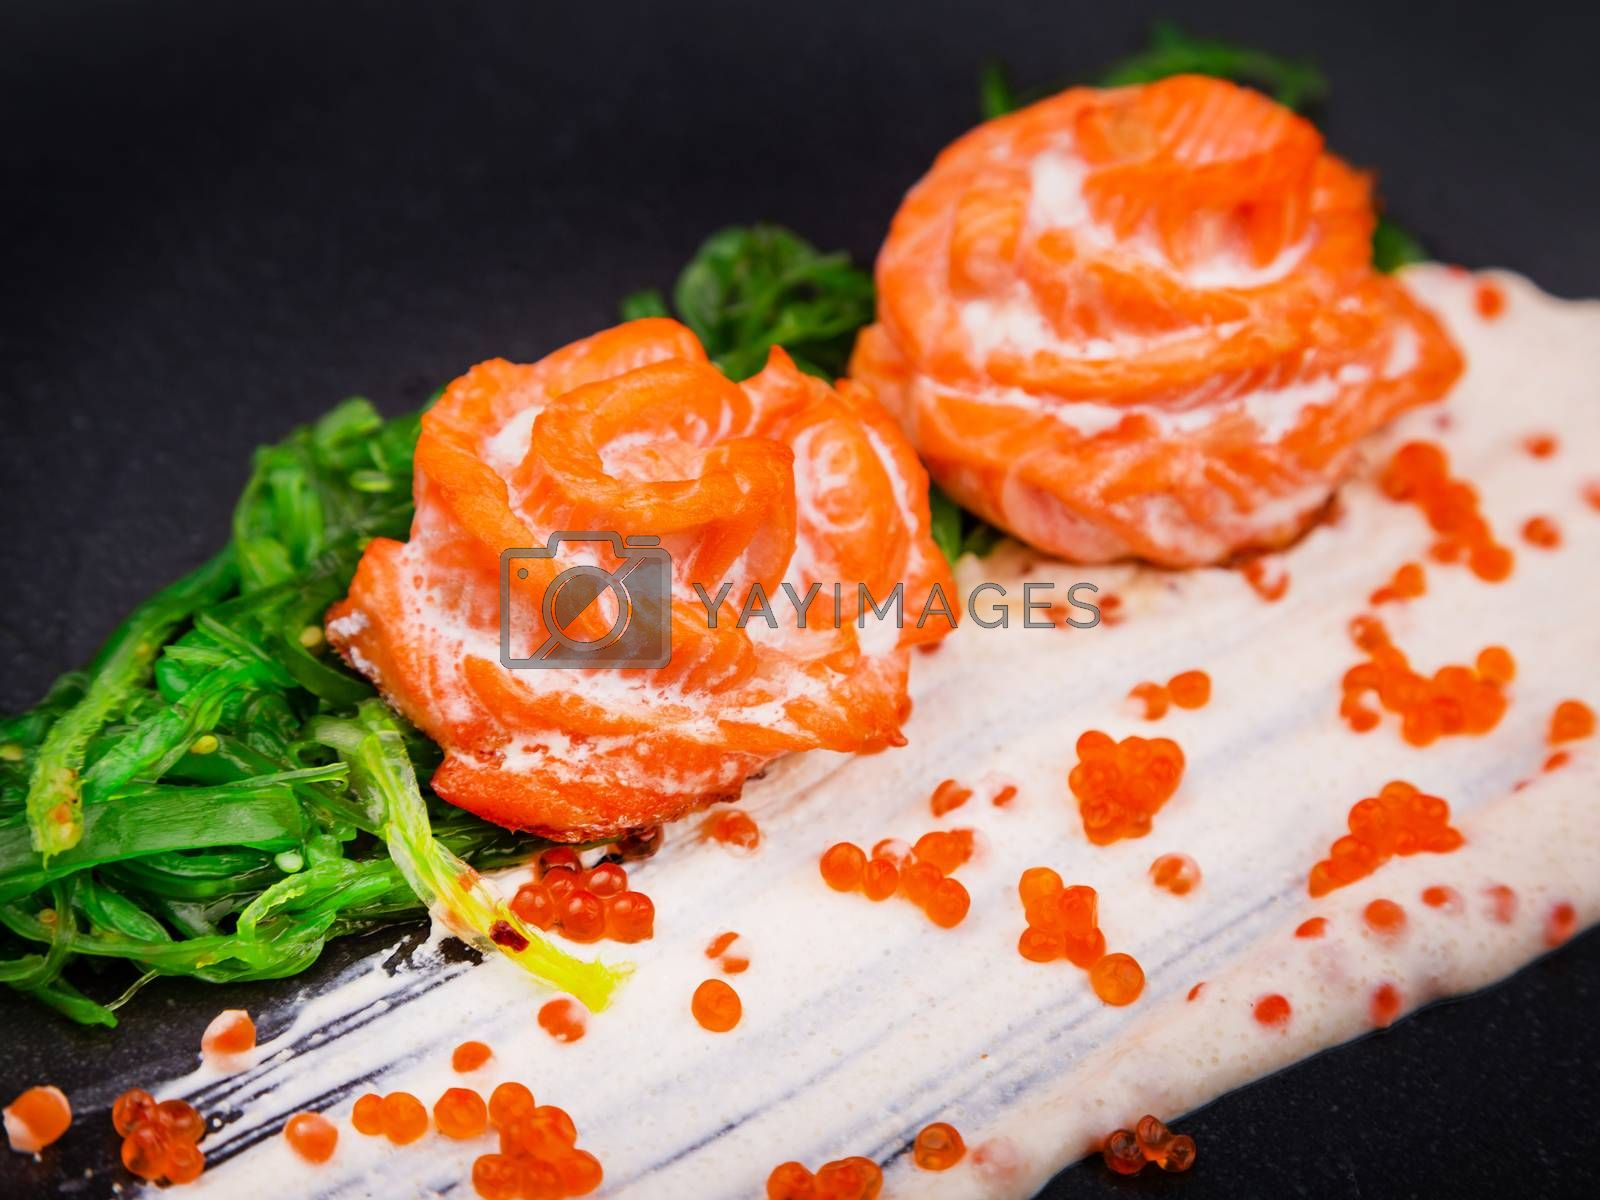 Cooked baked salmon in cream sauce garnished with hiyashi algae and red caviar, served on a black plate. Designer decorated dishes with salmon. Salmon fillet with green salad and red caviar.